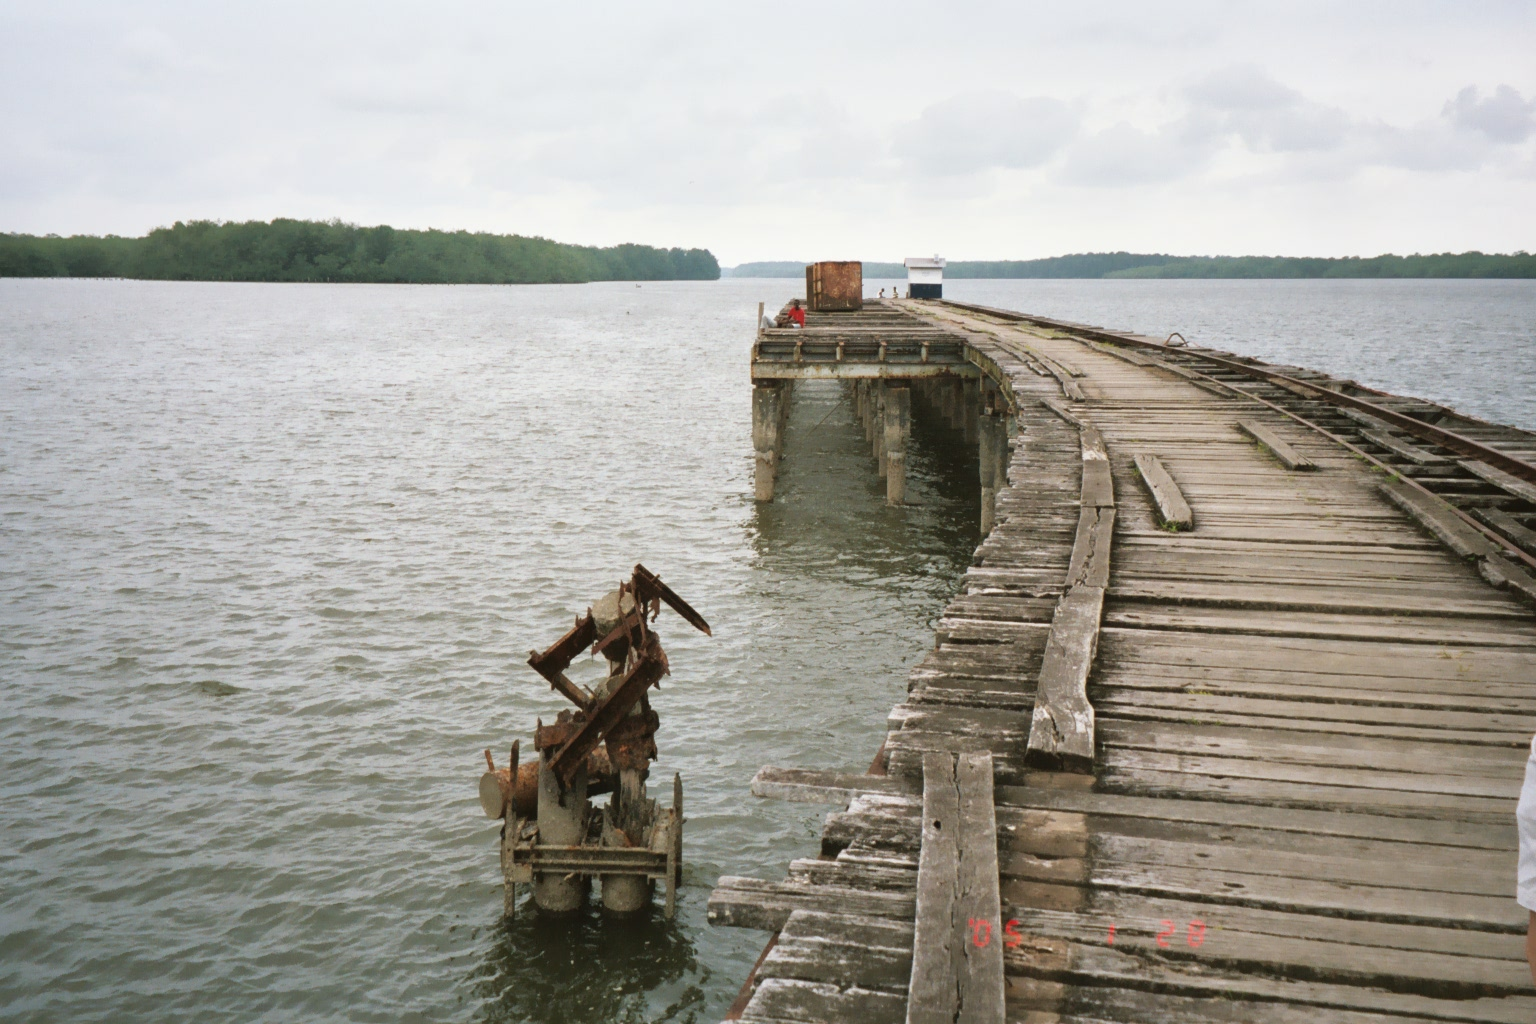 The pier extending out into the water